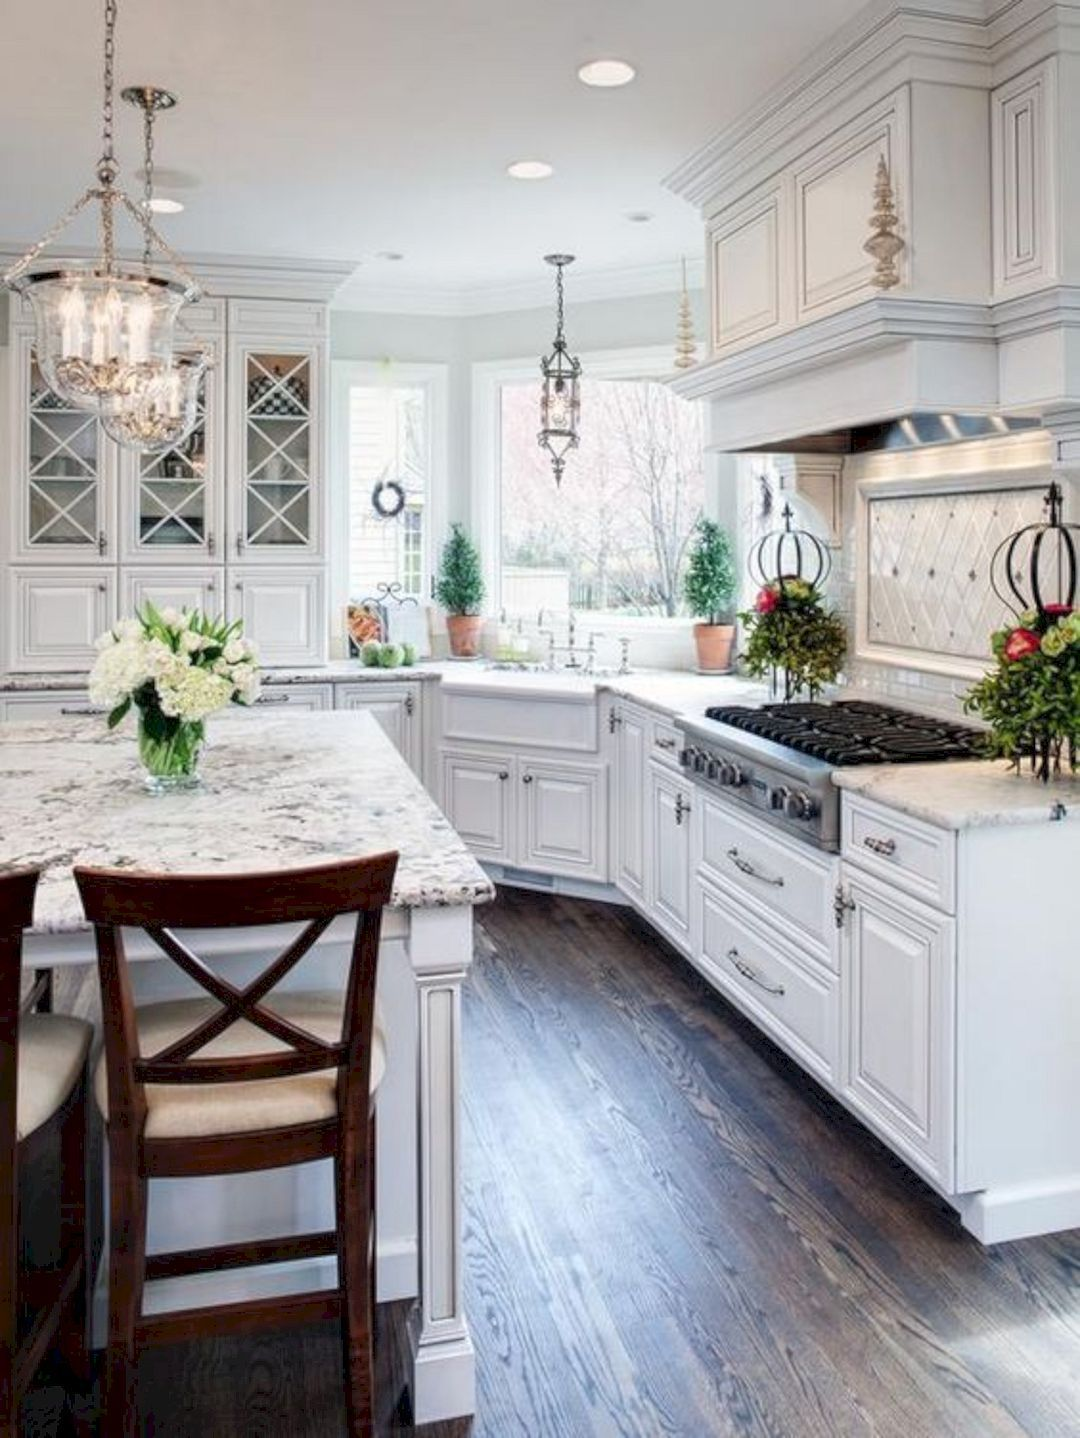 17 Traditional Home Decoration Ideas | Traditional, Decoration and on traditional game room ideas, traditional kitchen styles, traditional kitchen appliances, traditional kitchen islands, traditional kitchen organization, traditional small kitchens, traditional white kitchens, traditional decorating ideas, traditional kitchen home, traditional bonus room ideas, traditional kitchen colors, traditional closet ideas, traditional kitchen backsplash, traditional kitchen cabinets, living room ideas, traditional art ideas, traditional kitchen light, traditional kitchen art, traditional kitchen design magazine, traditional bedding ideas,